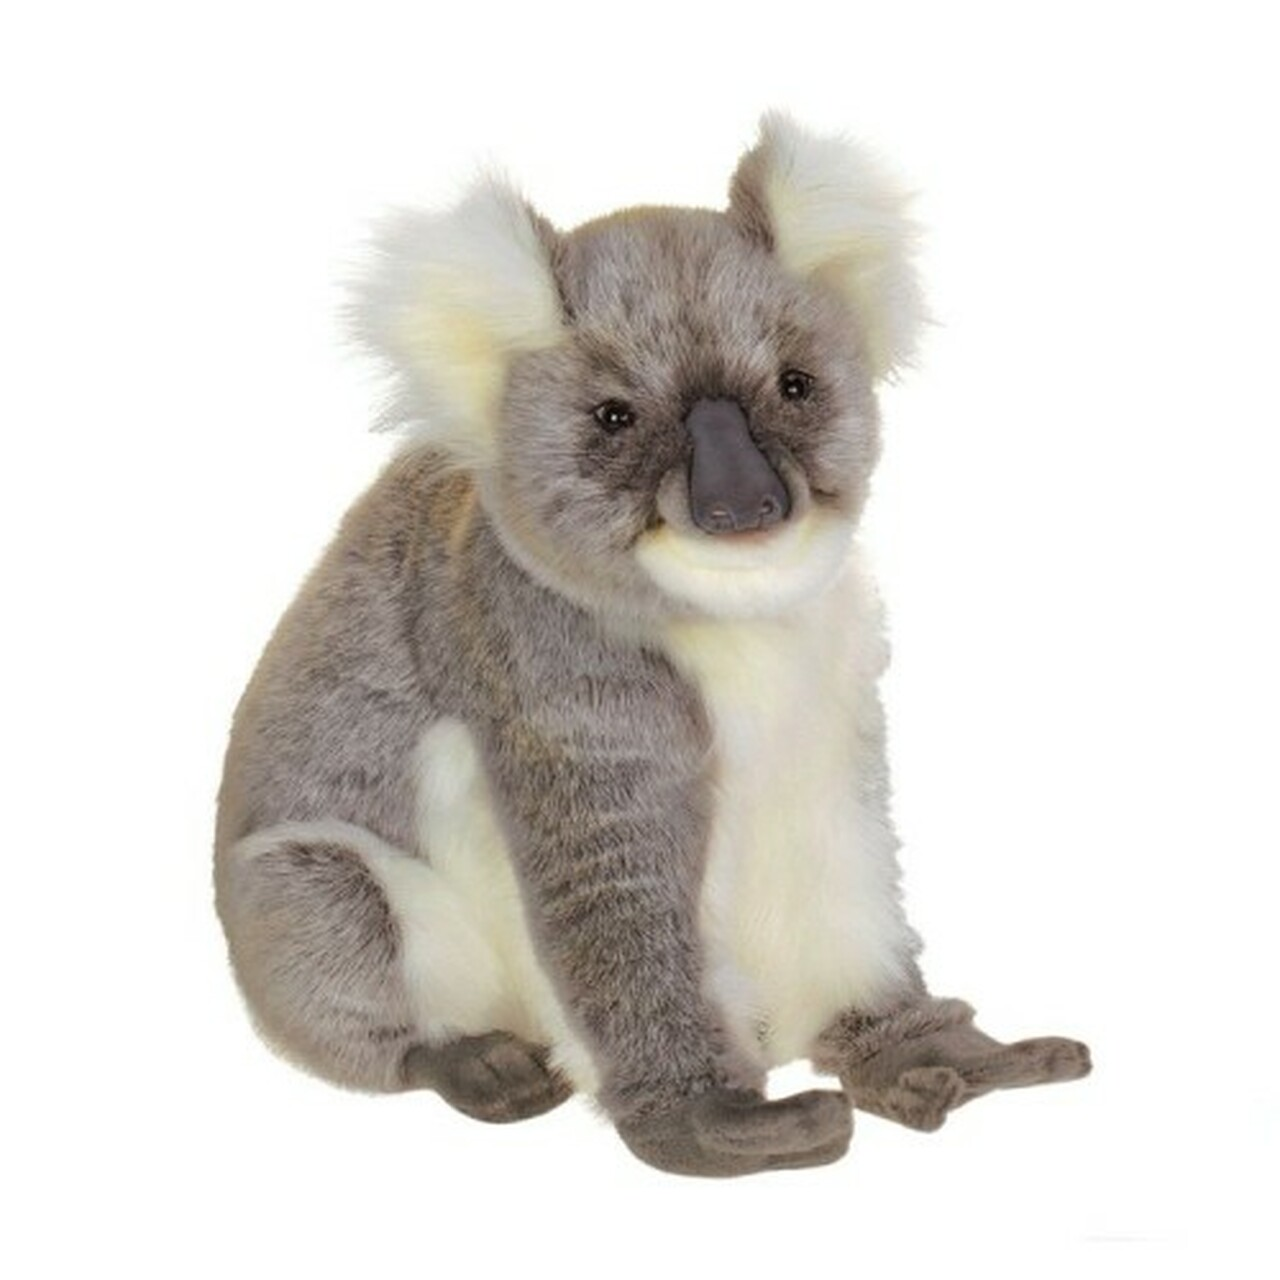 16 5 Lifelike Handcrafted Extra Soft Plush Koala Bear Stuffed